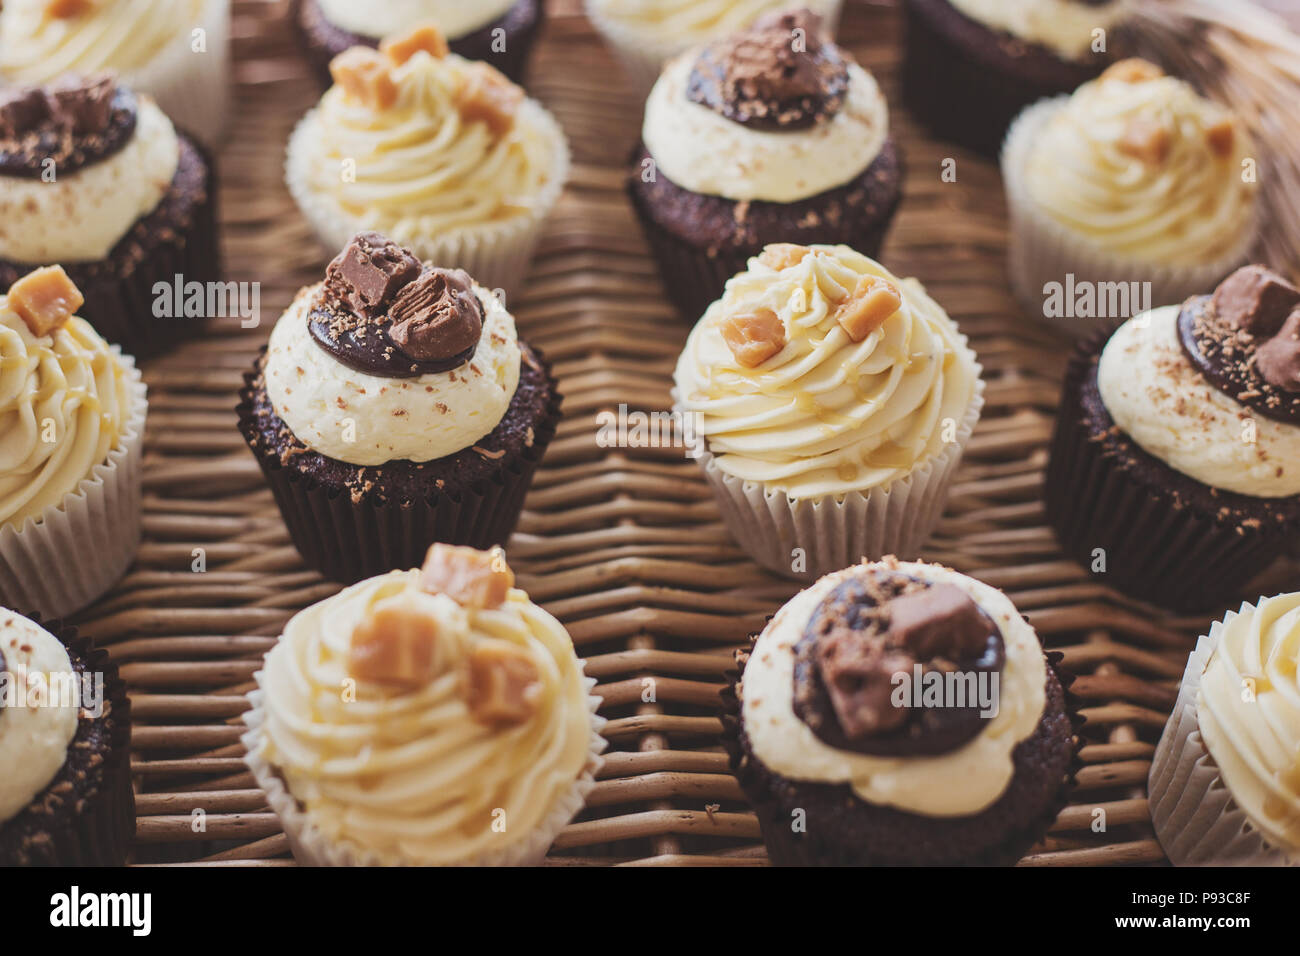 caramel and chocolate cupcakes laid out in a presentation box - Stock Image